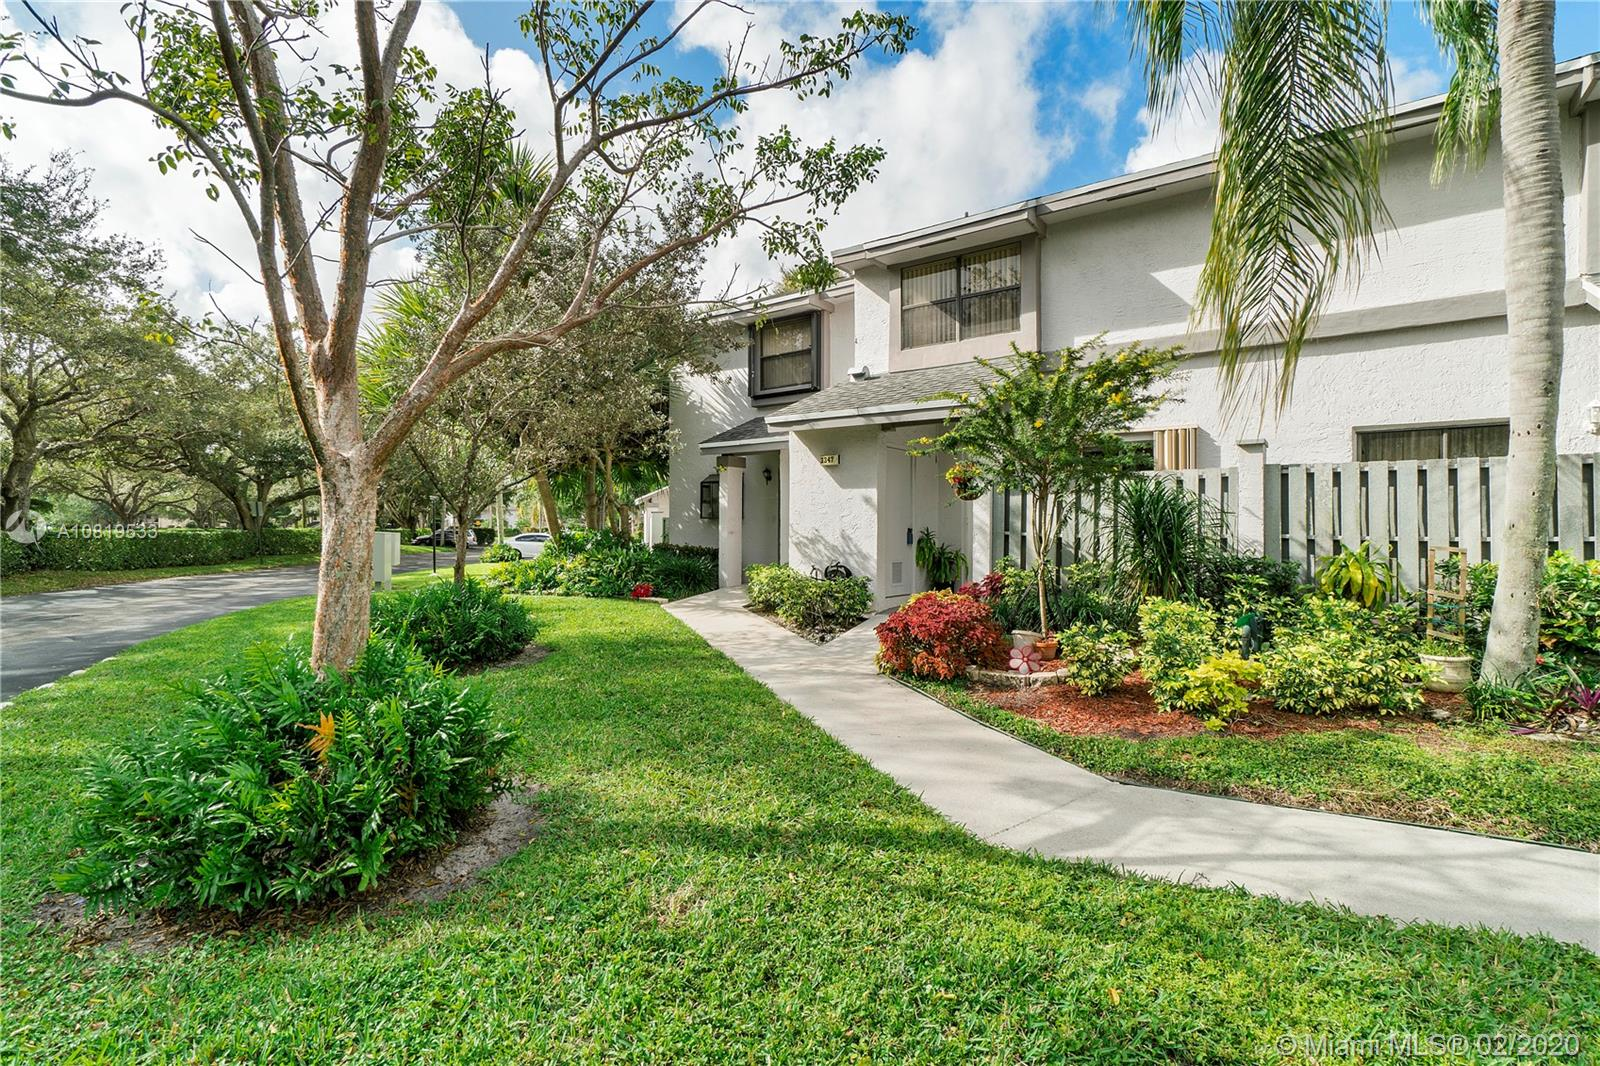 Welcome to Coconut Creek, The Township. Come see this well maintained 2 bed 2.5 bath townhouse. A screened in patio allows you to enjoy all the nature this beautiful community has to offer. This community offers multiple pools, basketball, tennis, racket ball, nature trails, weight room and so much more. This community is also dog friendly!